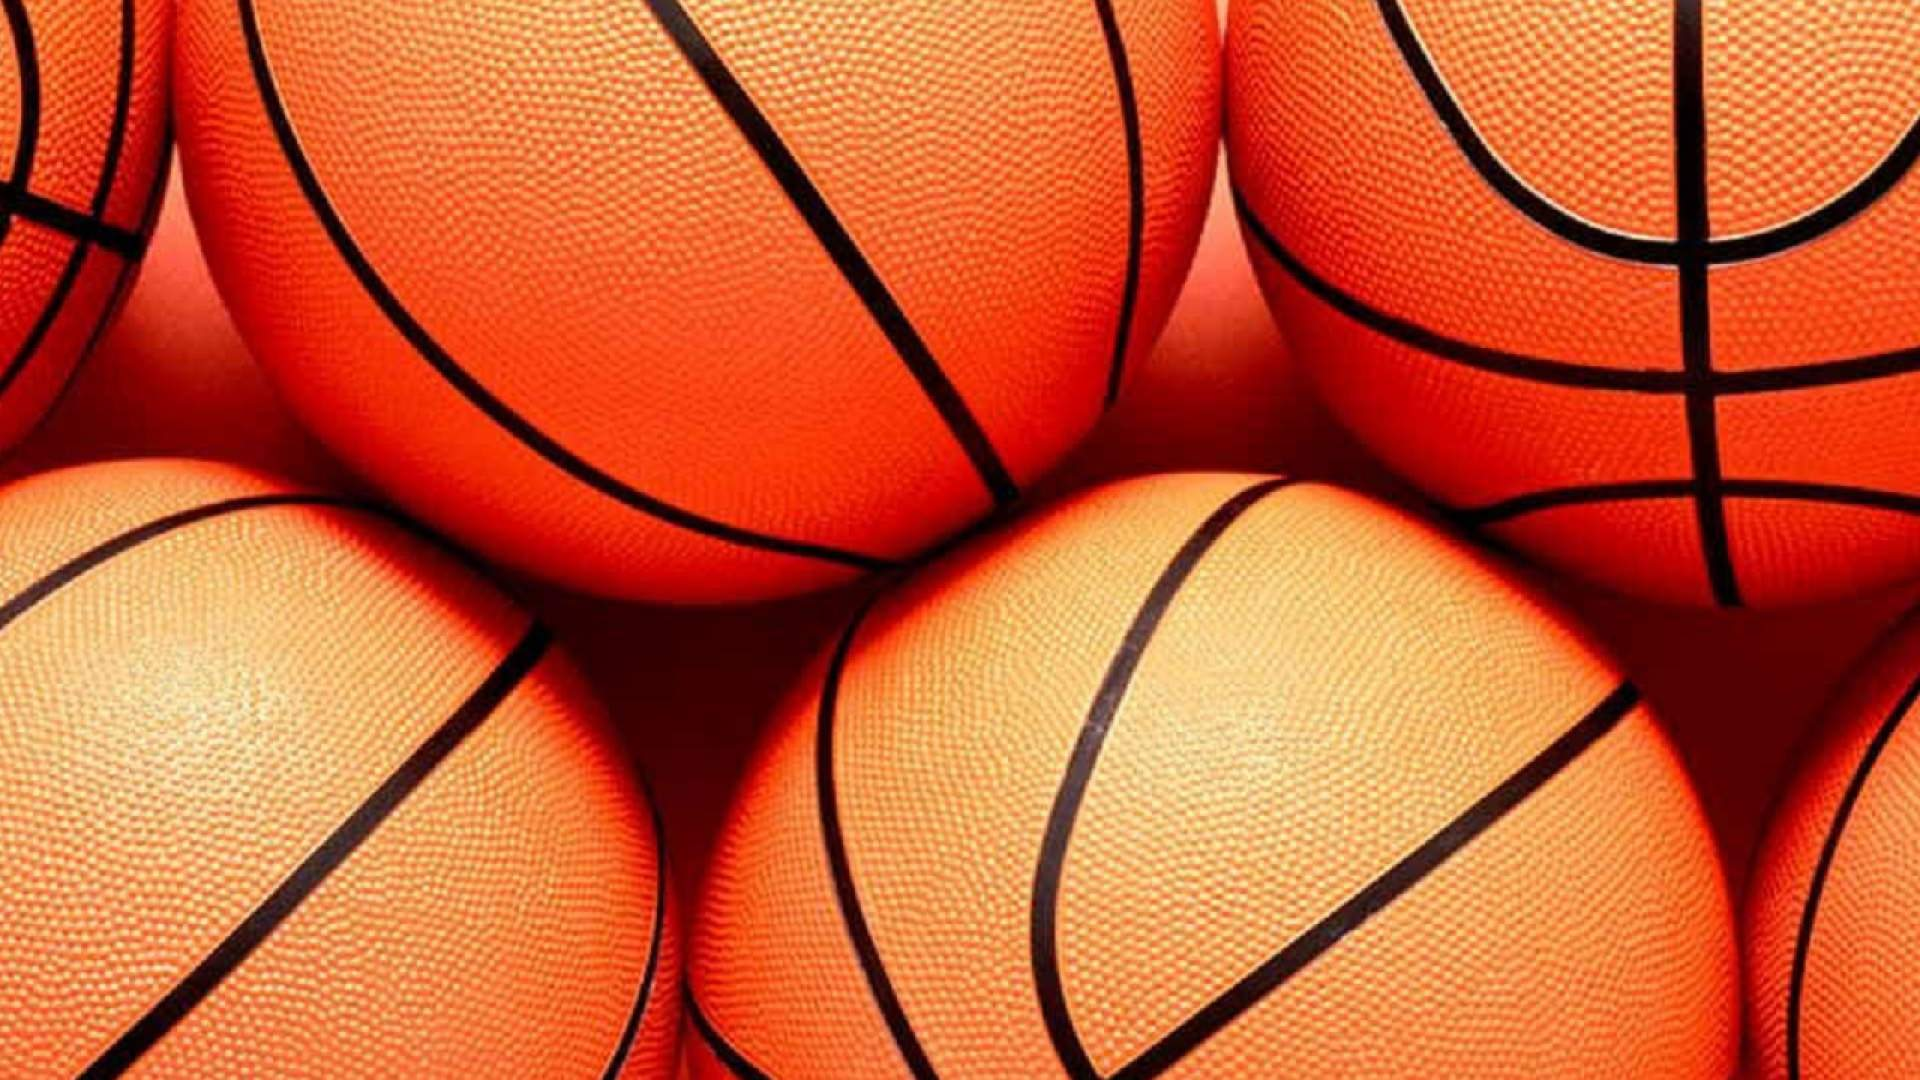 Orange Colour Basketballs wallpaper